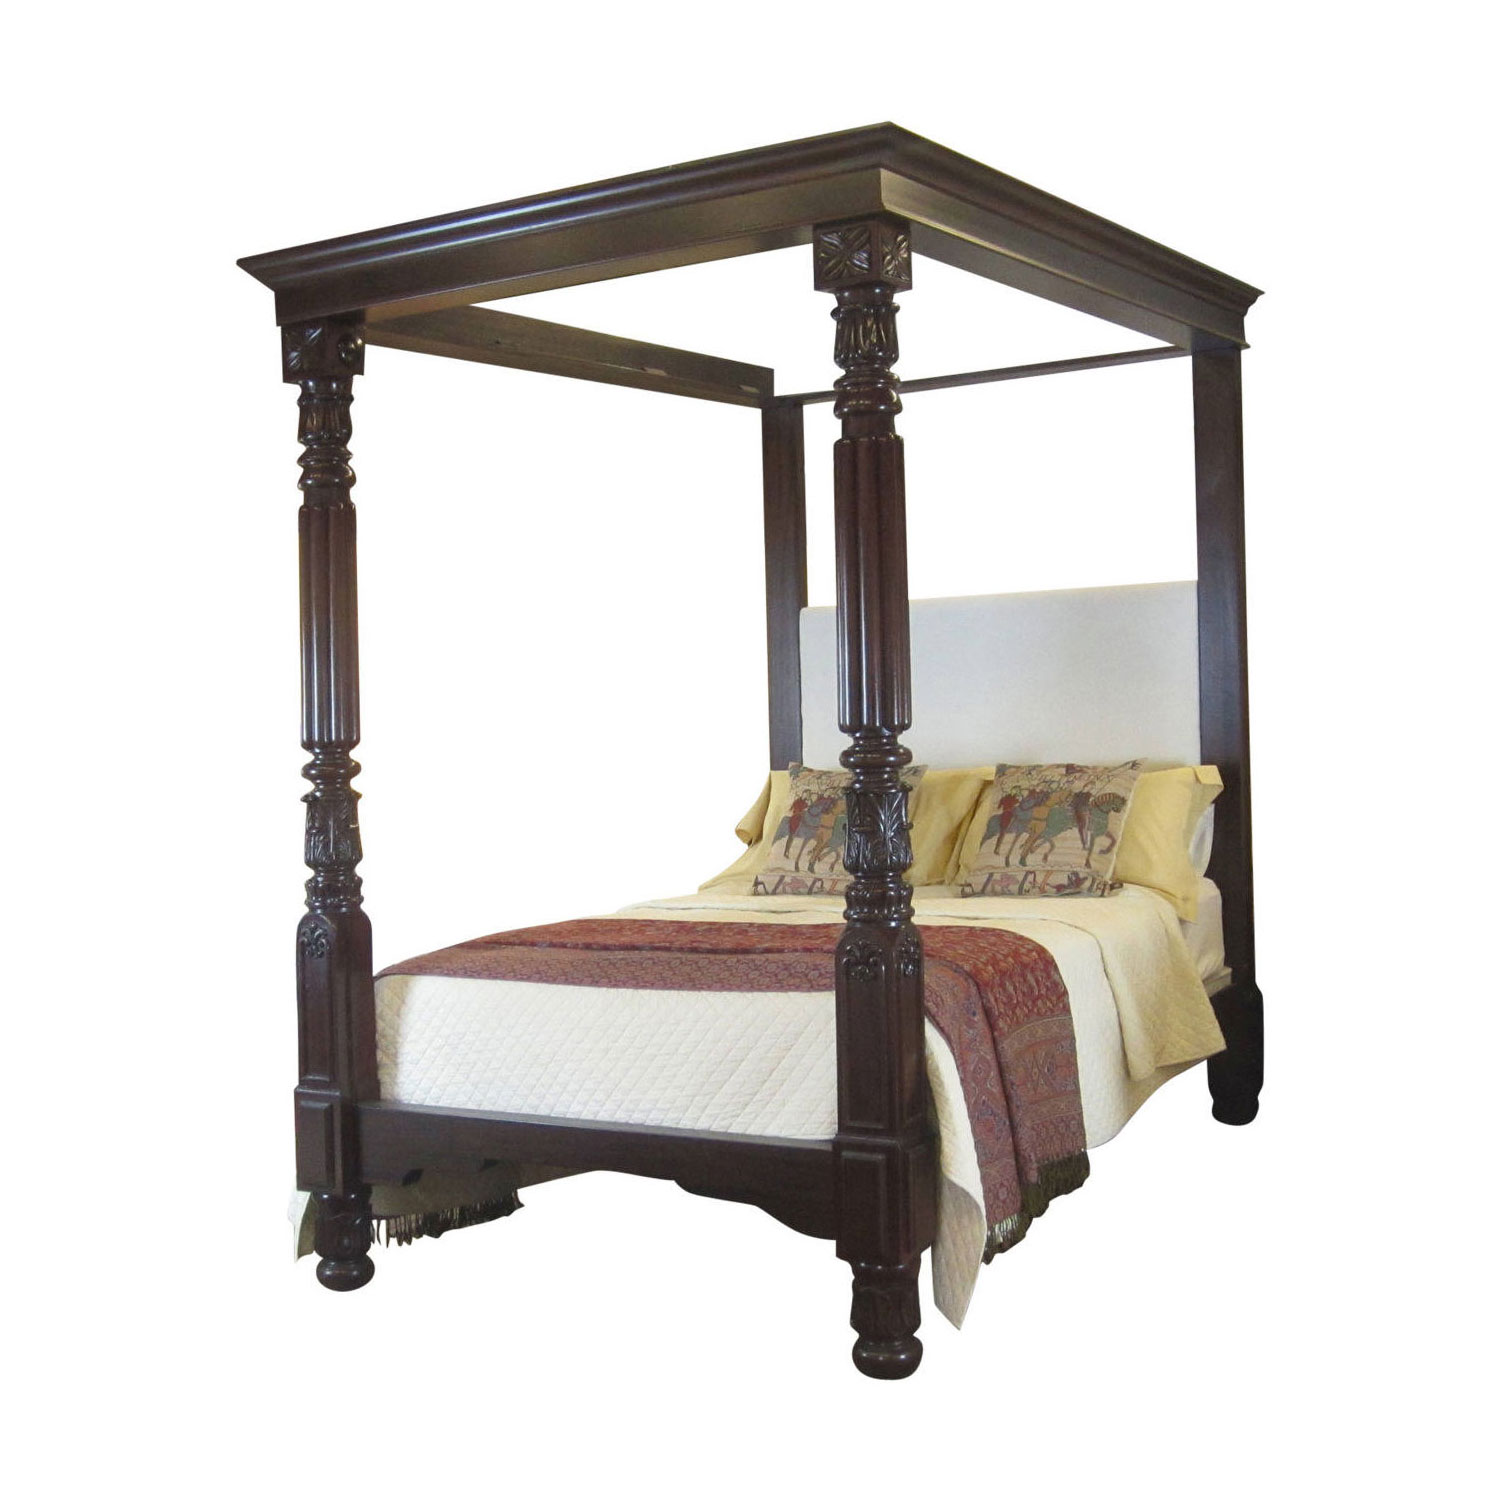 Wood Four Poster Beds Canopy Metal King Size Beds